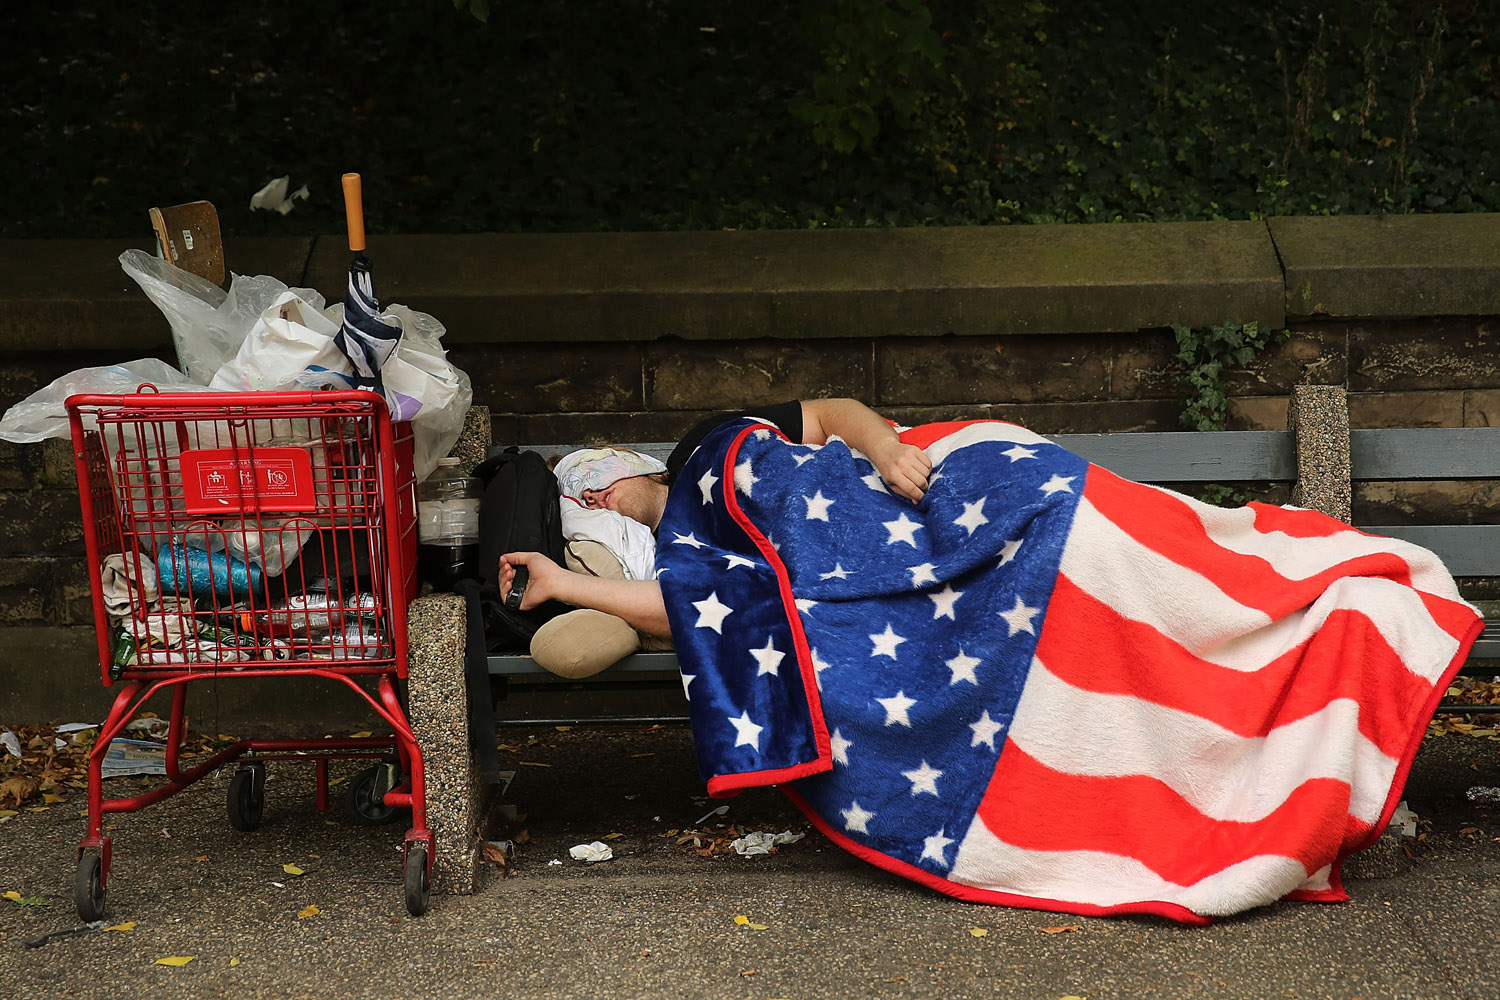 A homeless man sleeps under an American Flag blanket on a park bench in the Brooklyn borough of New York City on Sept. 10, 2013.